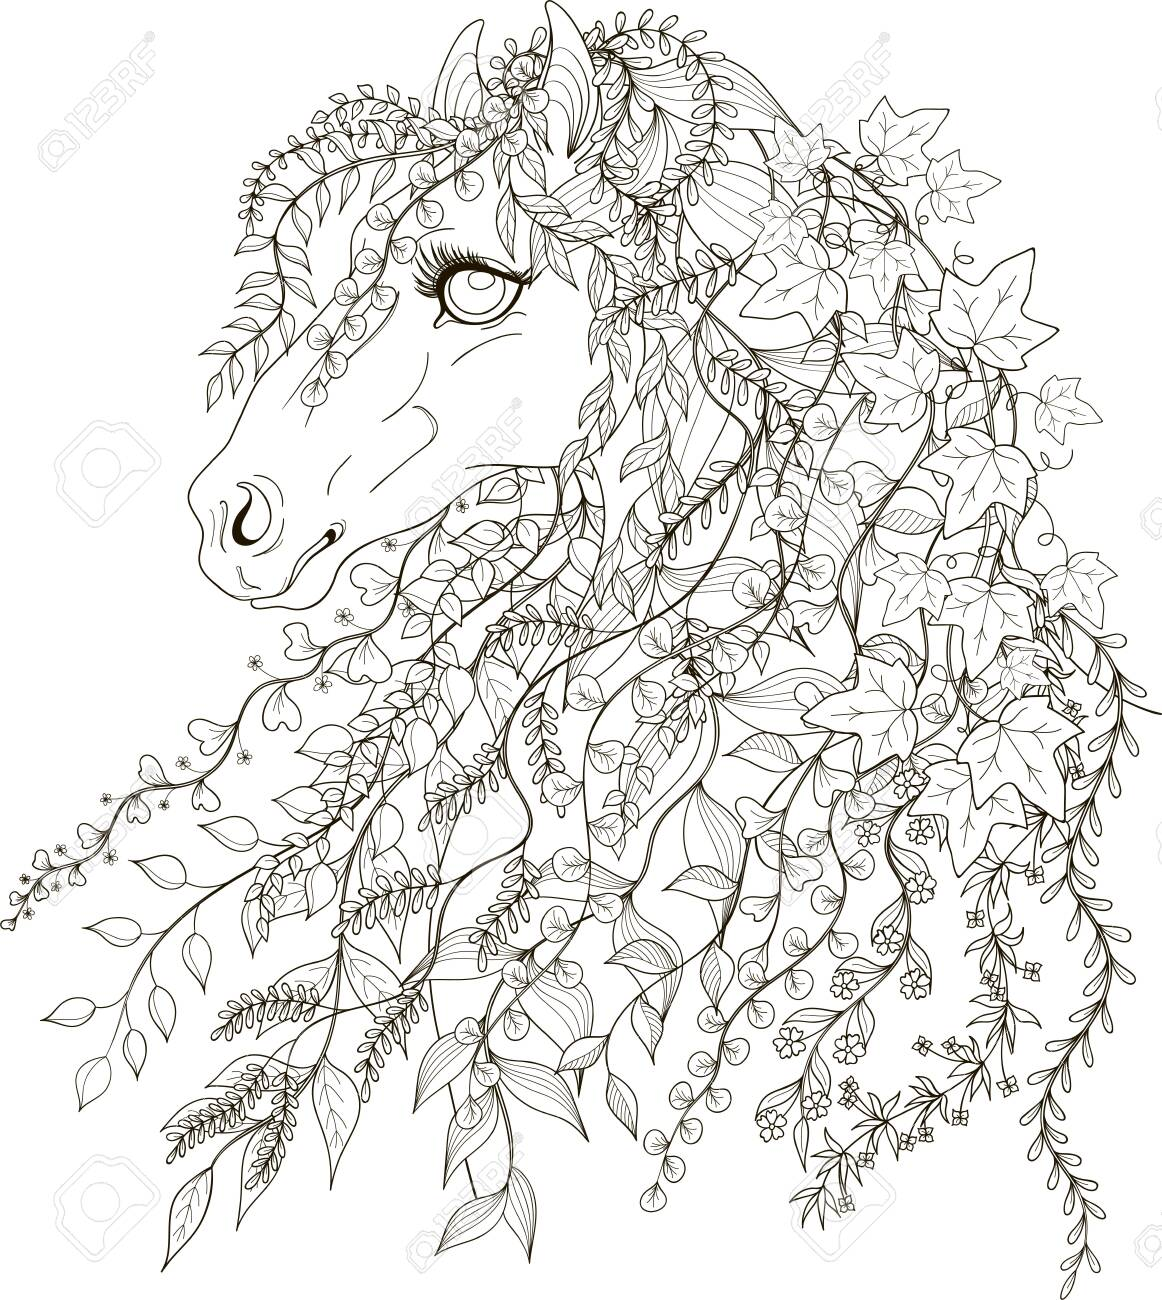 Spring Horse In Style For Adult Coloring Pages Stylized Illustration